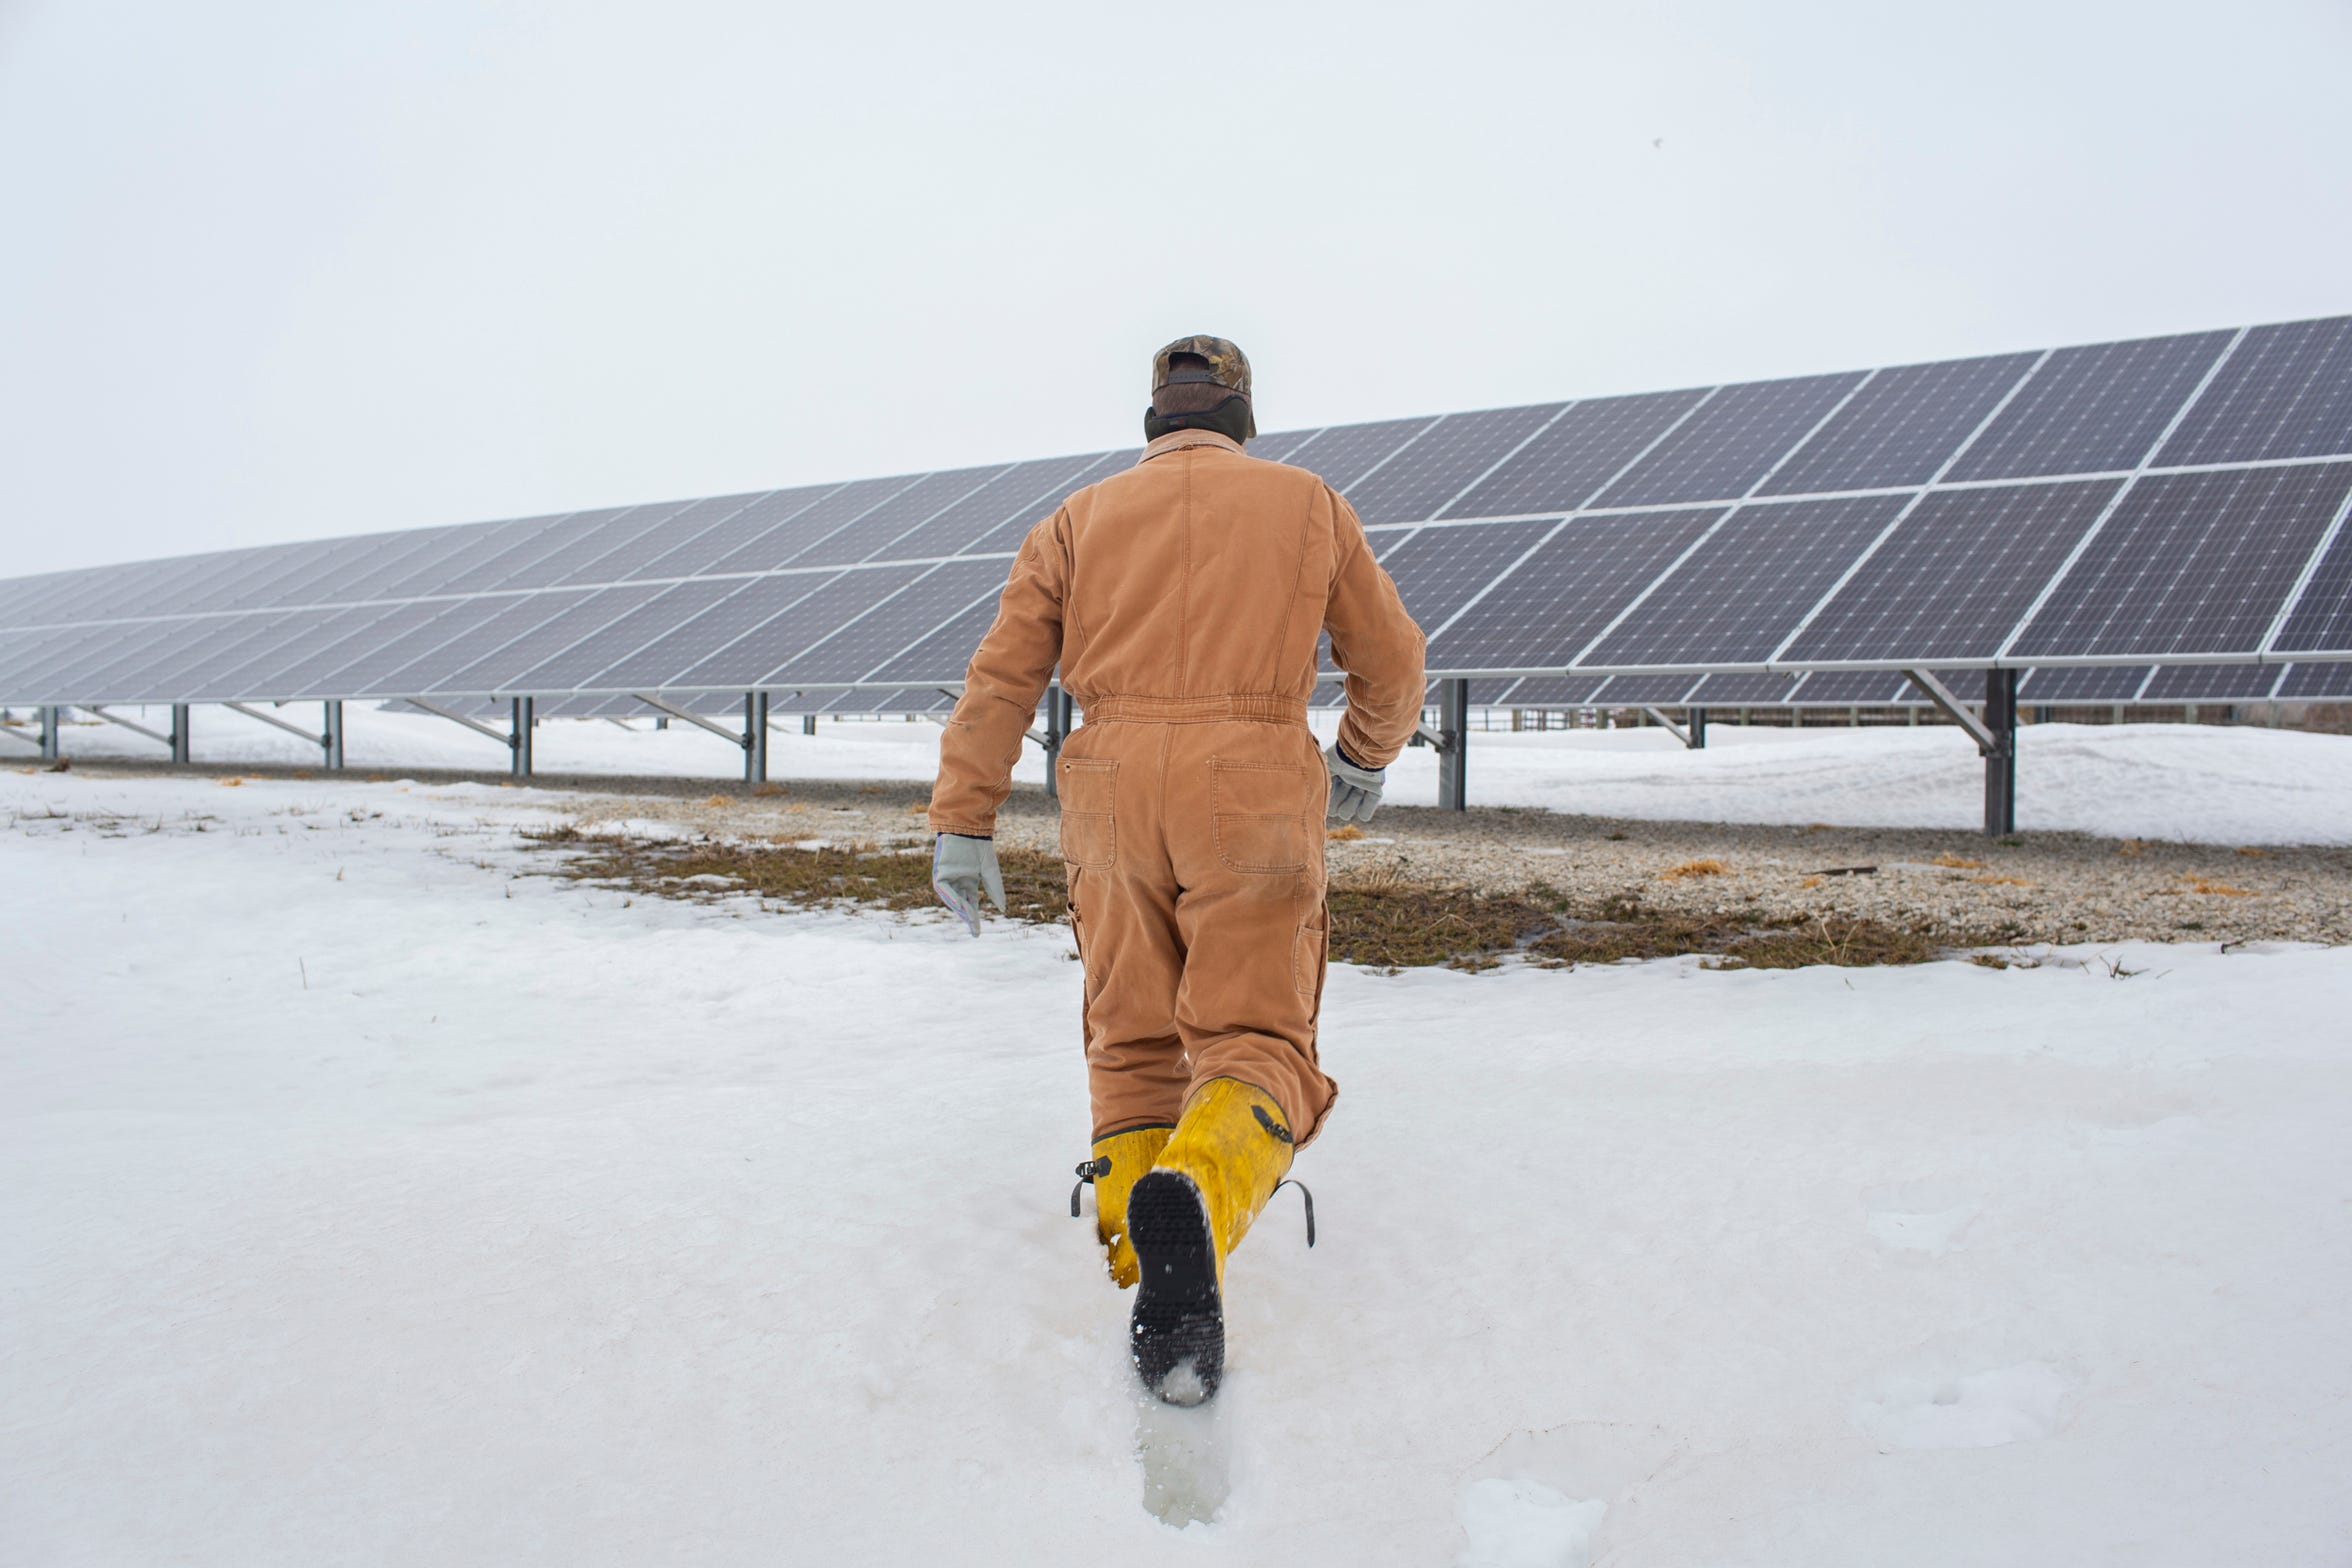 Randy DeBaillie has installed solar panels at his farm in Orion, Ill. He says they produce enough energy to run his entire operation.